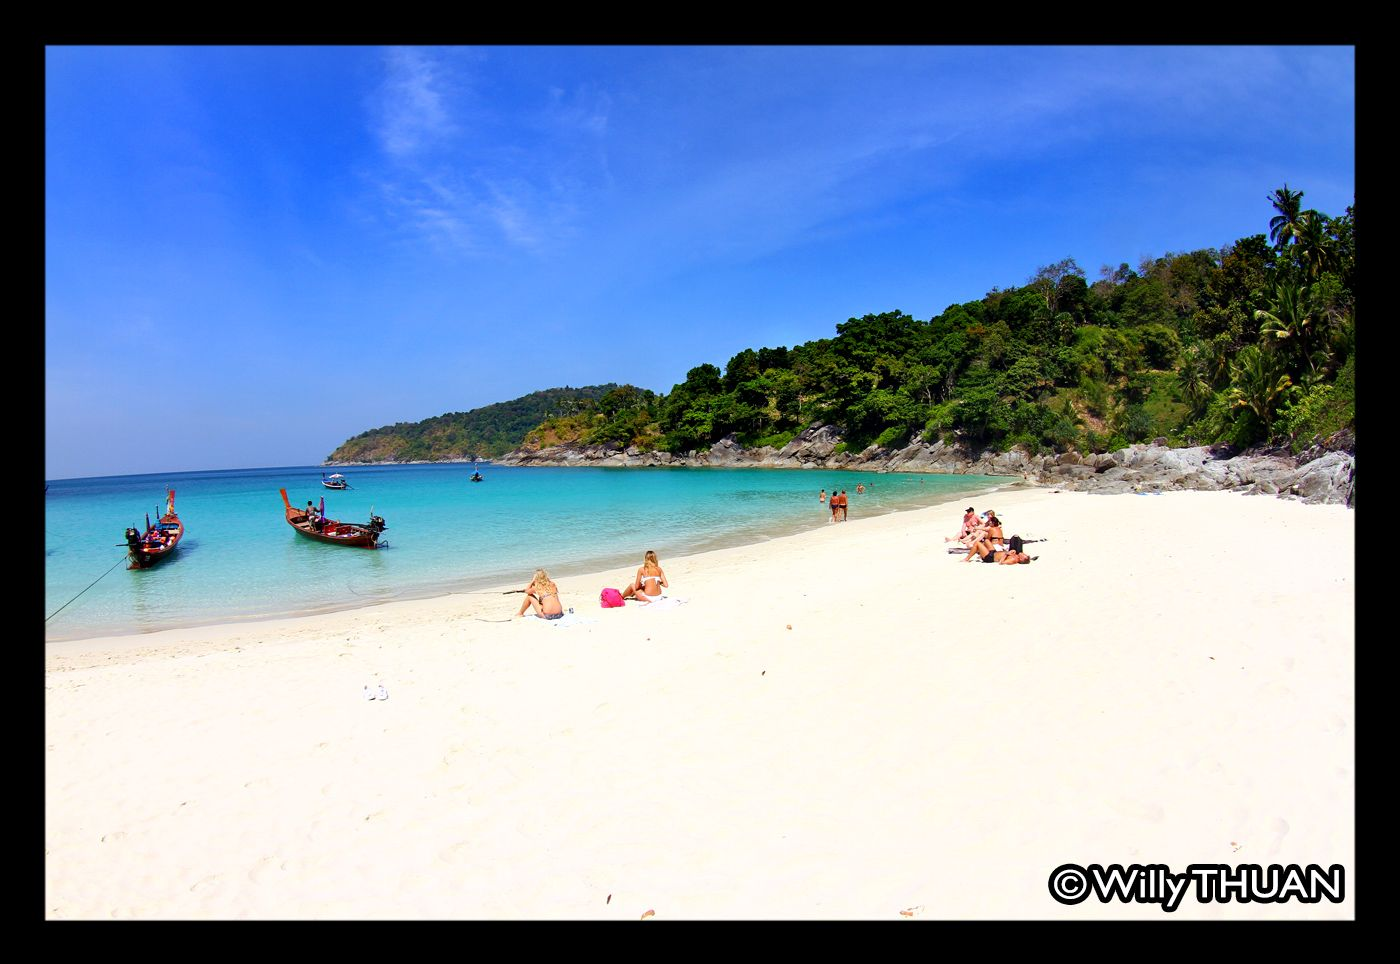 Freedom Beach is an anomaly on Phuket